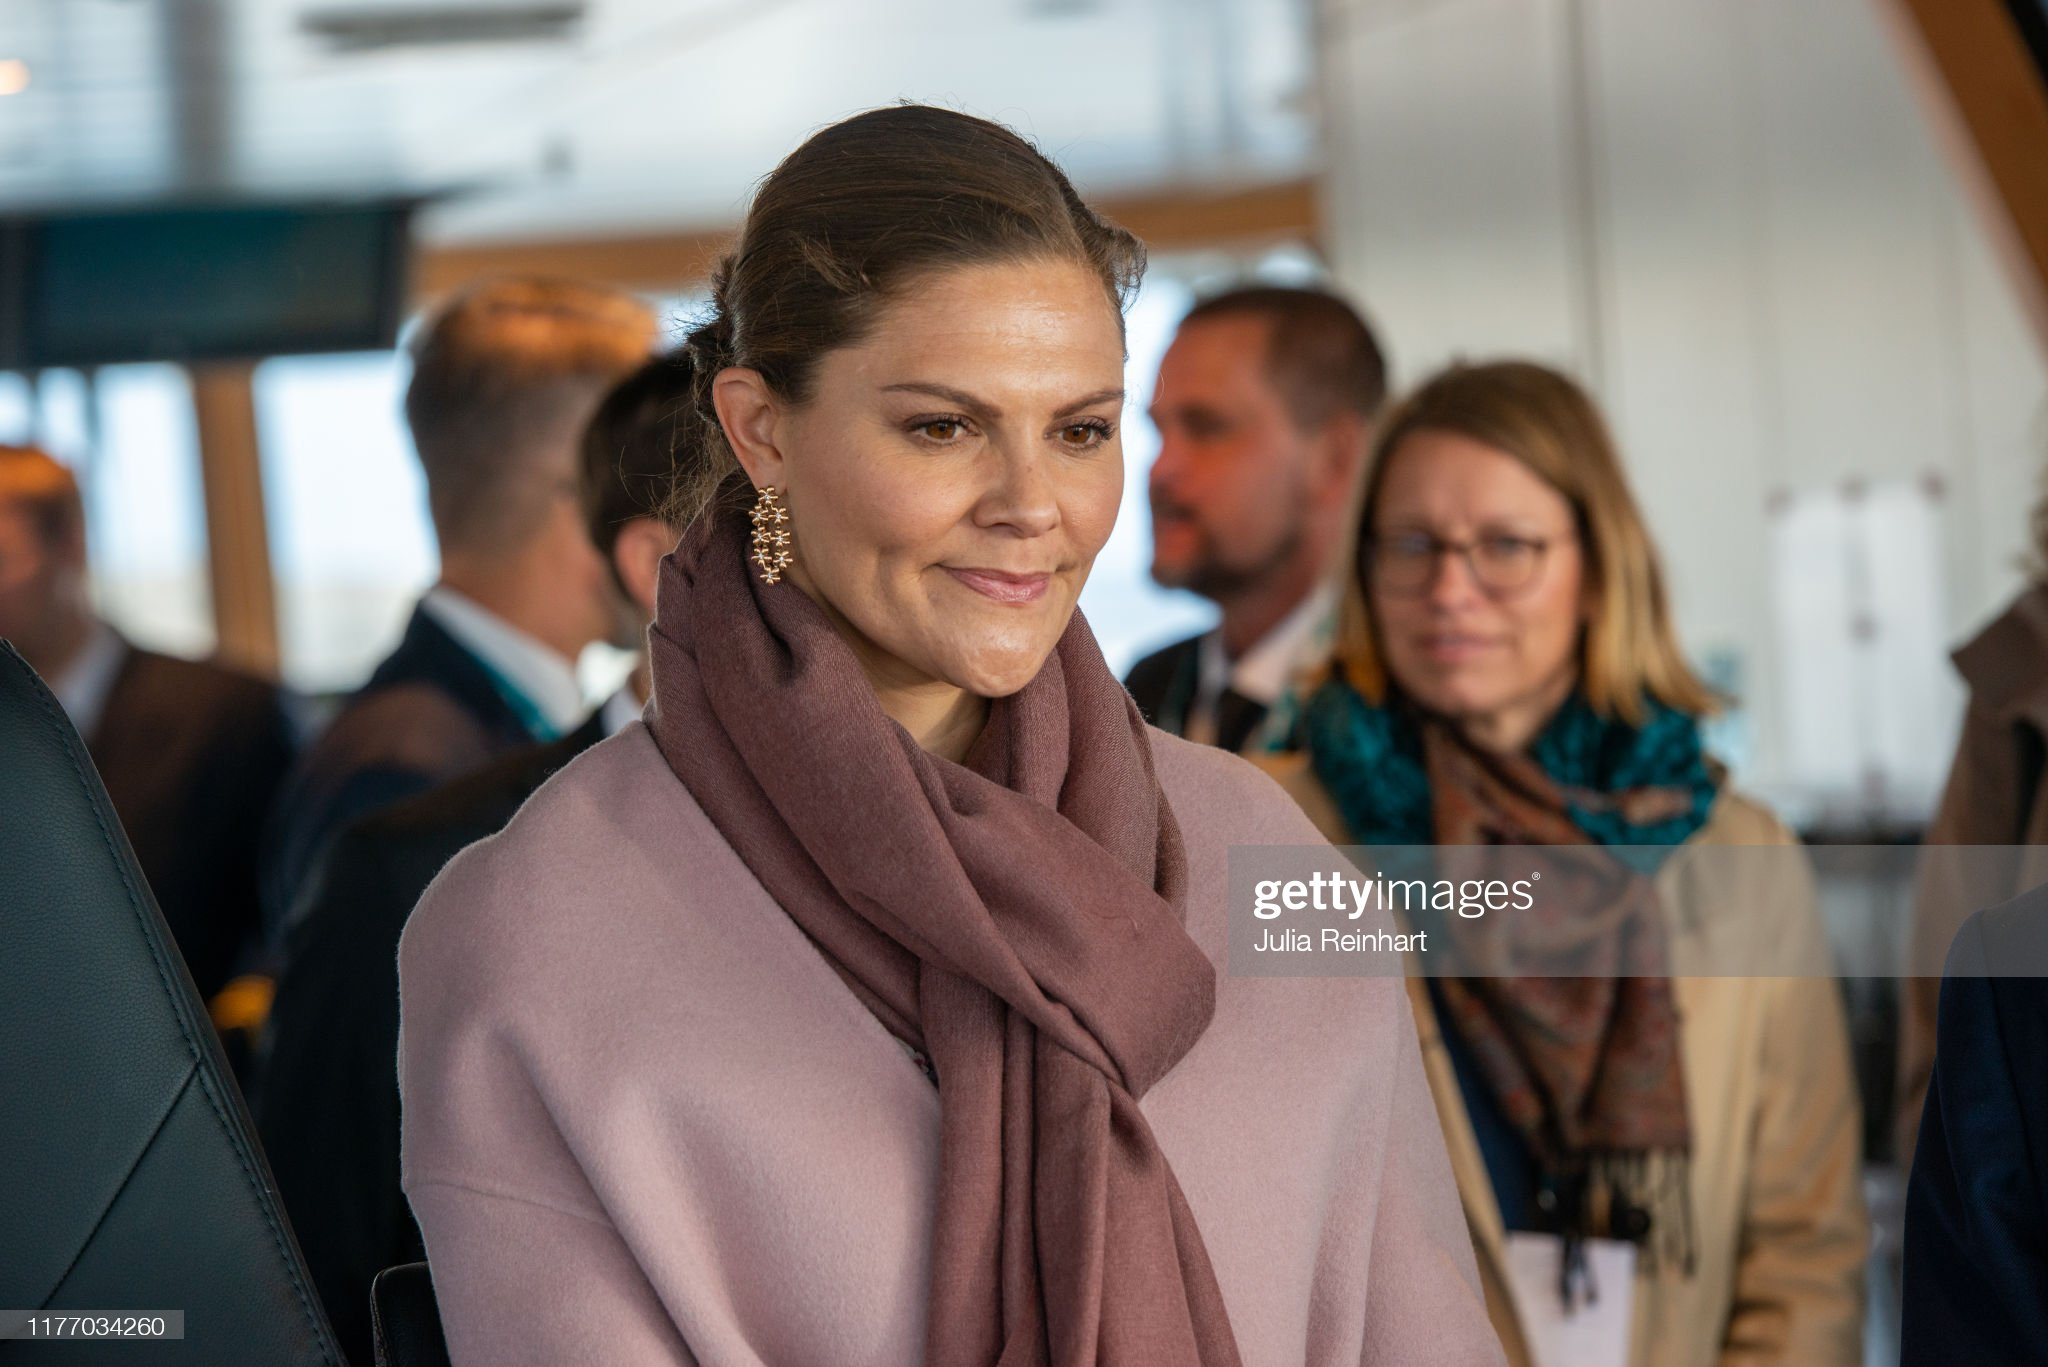 crown-princess-victoria-inspects-the-sea-fish-laboratorys-new-ship-picture-id1177034260